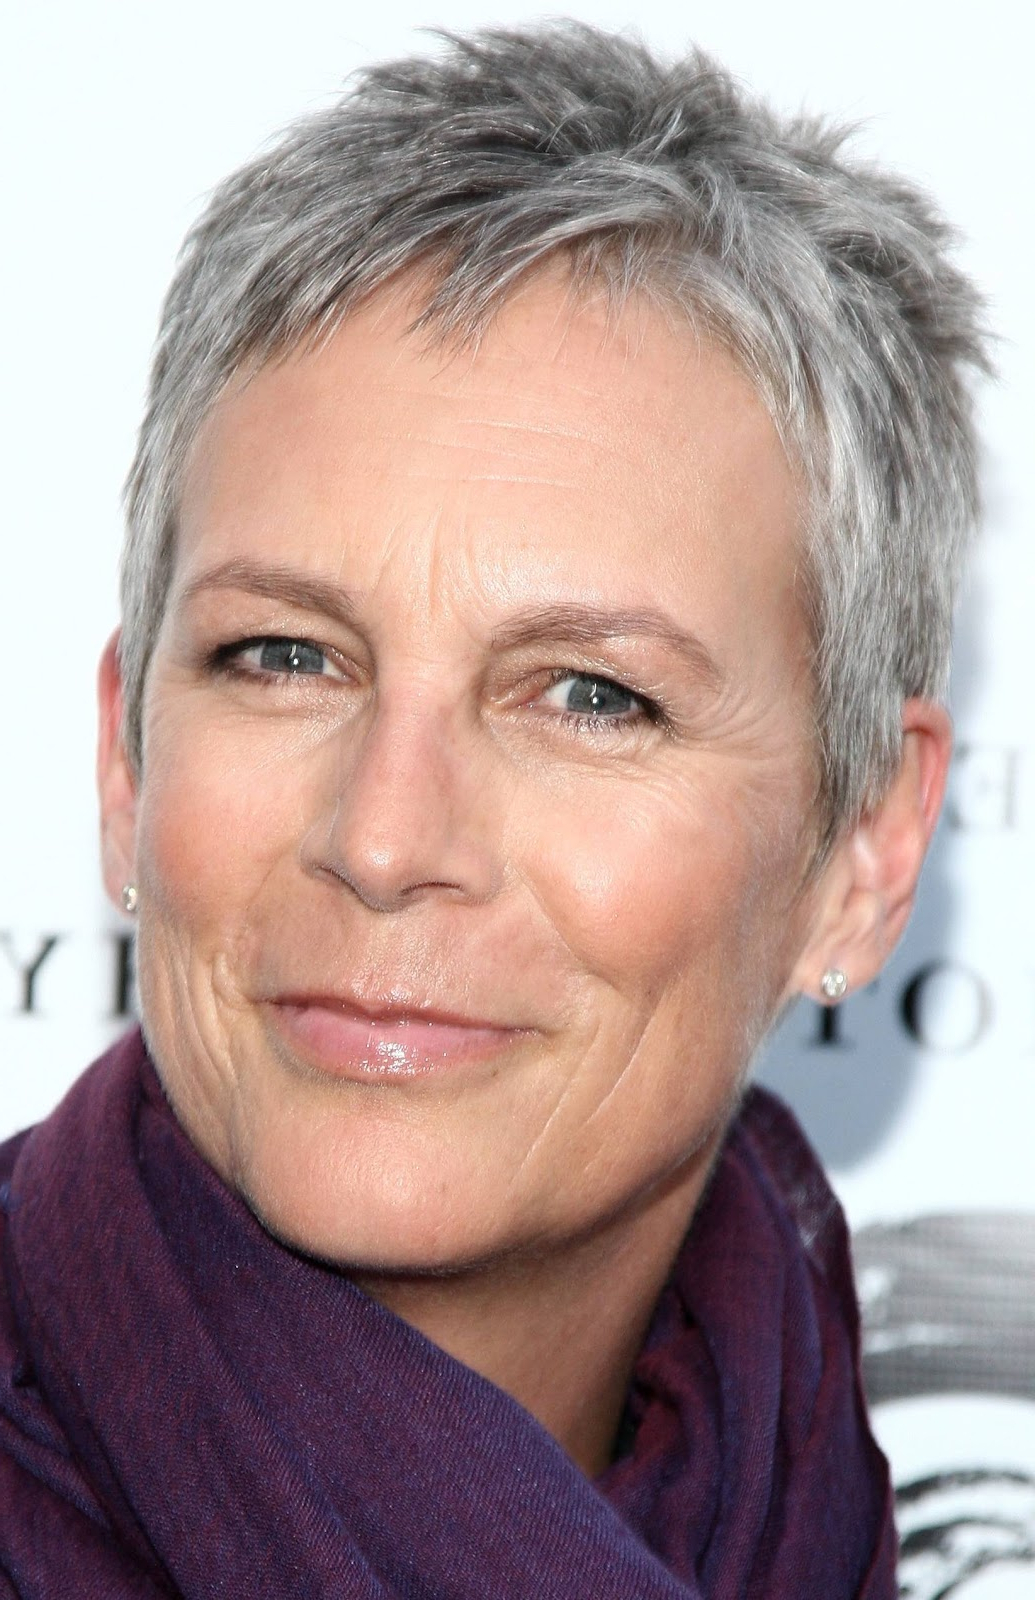 Short Hairstyle For Gray Hair For Short Hairstyles For Women With Gray Hair (View 9 of 25)